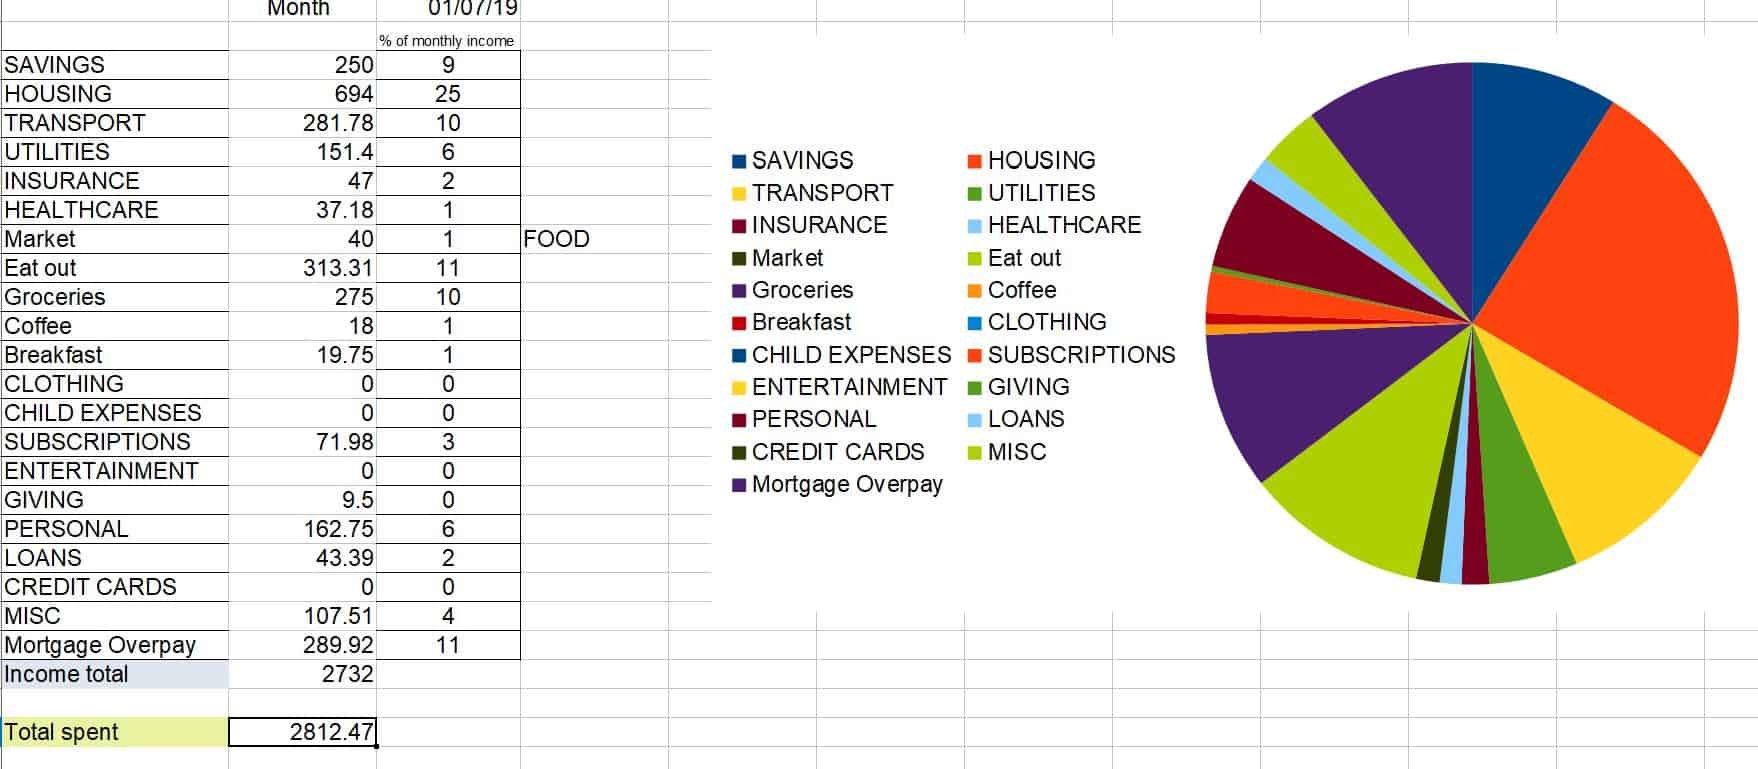 Spreadsheet showing my spending totals for July 2019